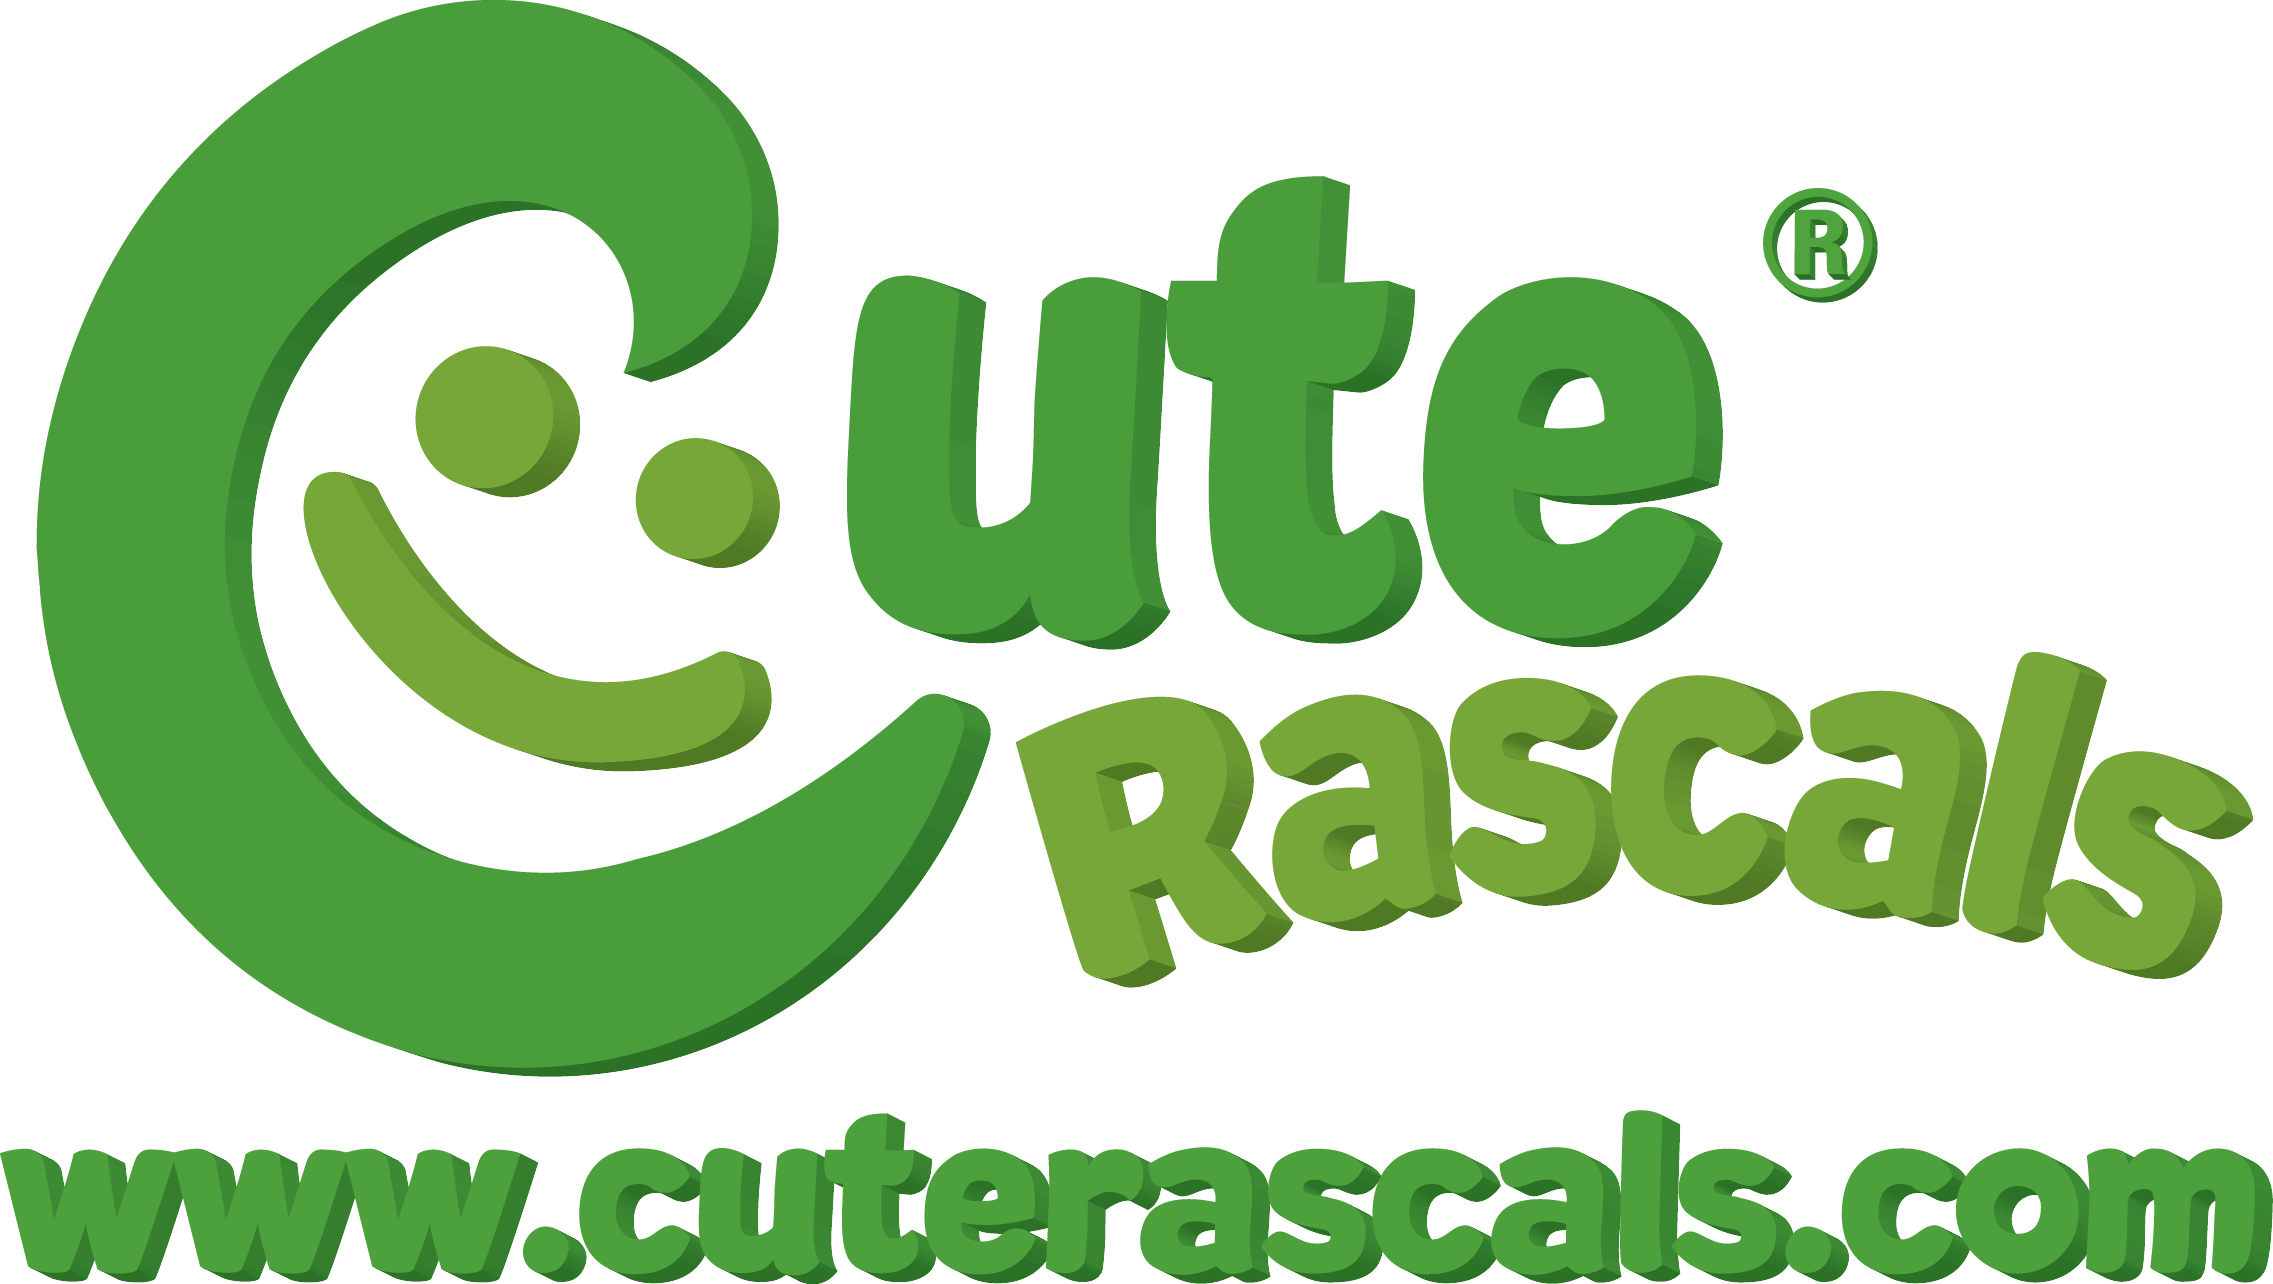 Cute Rascals' Blog